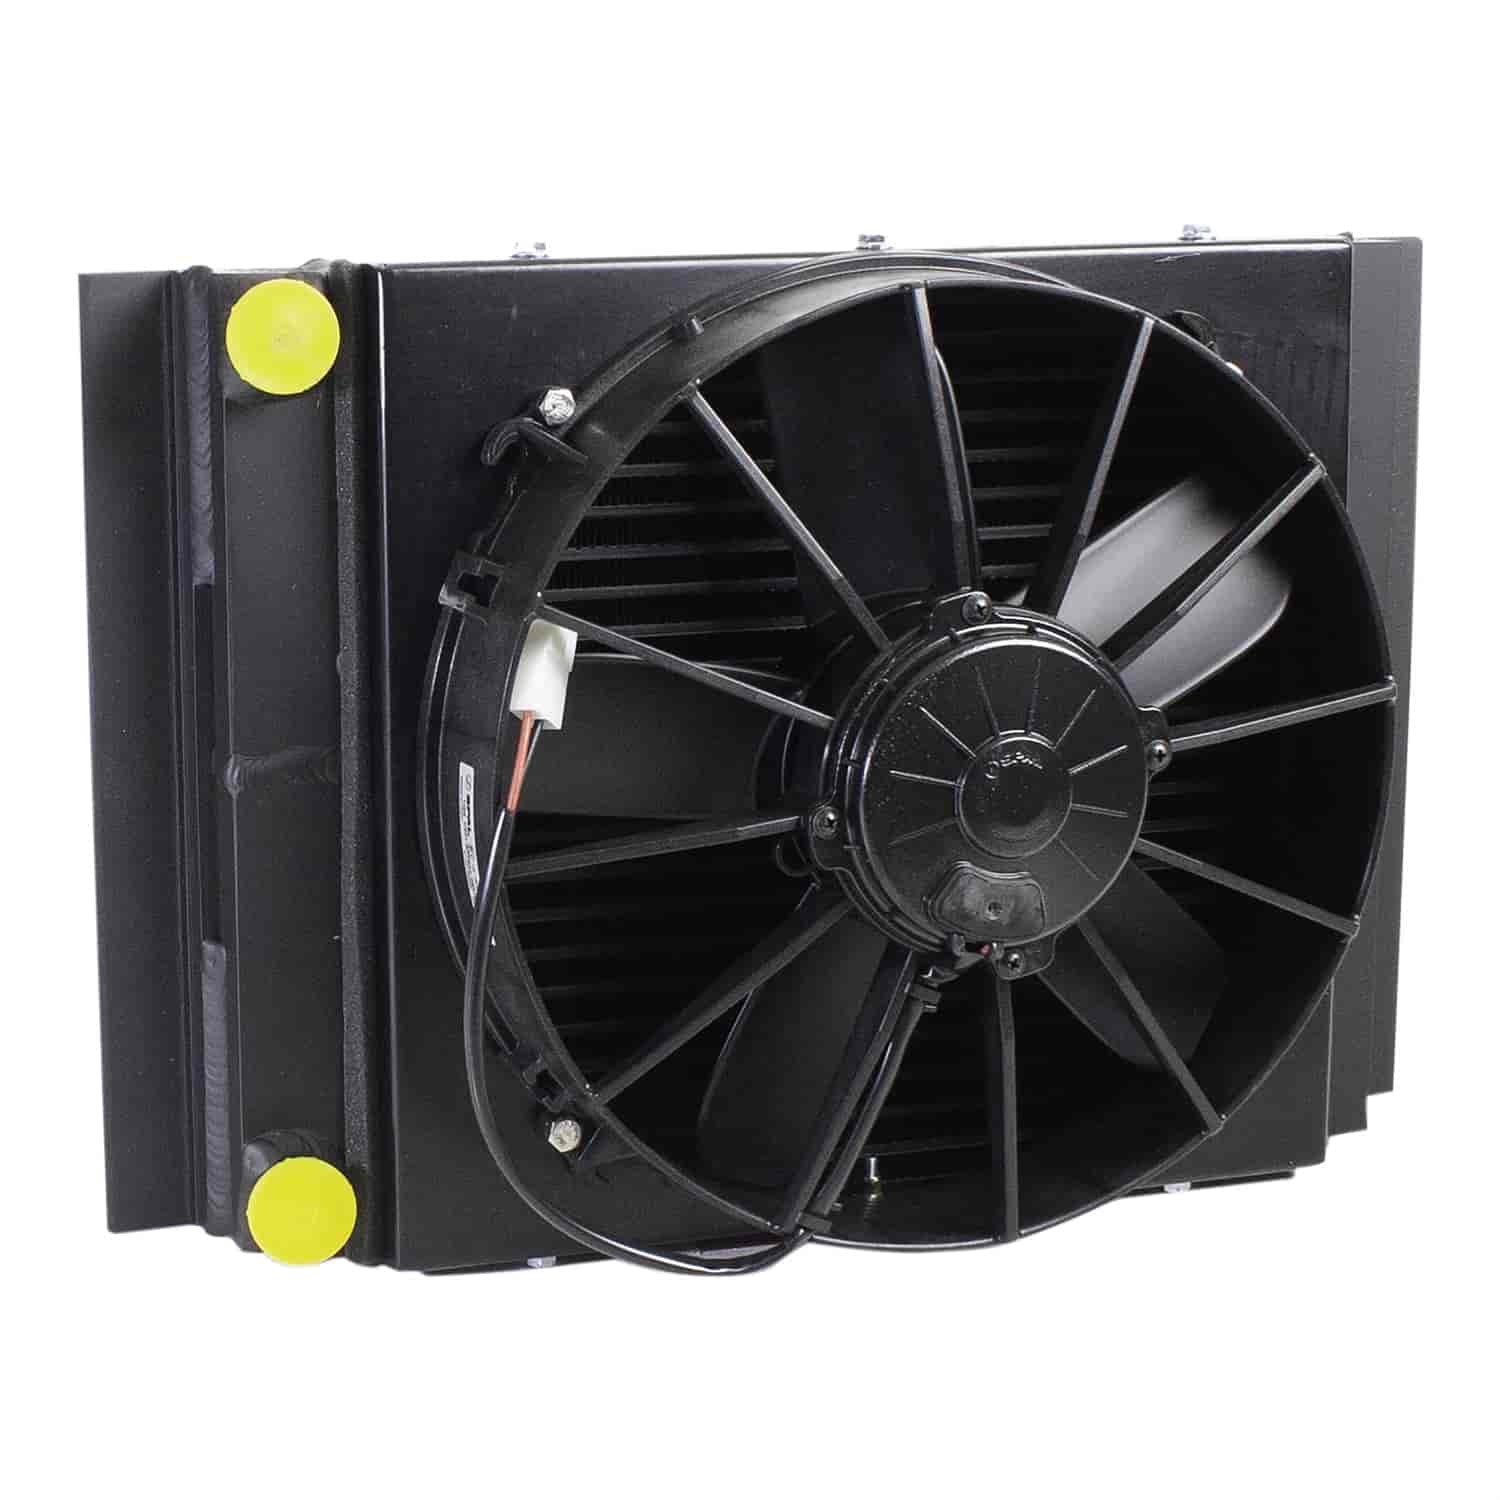 Griffin Radiators CXU-00001